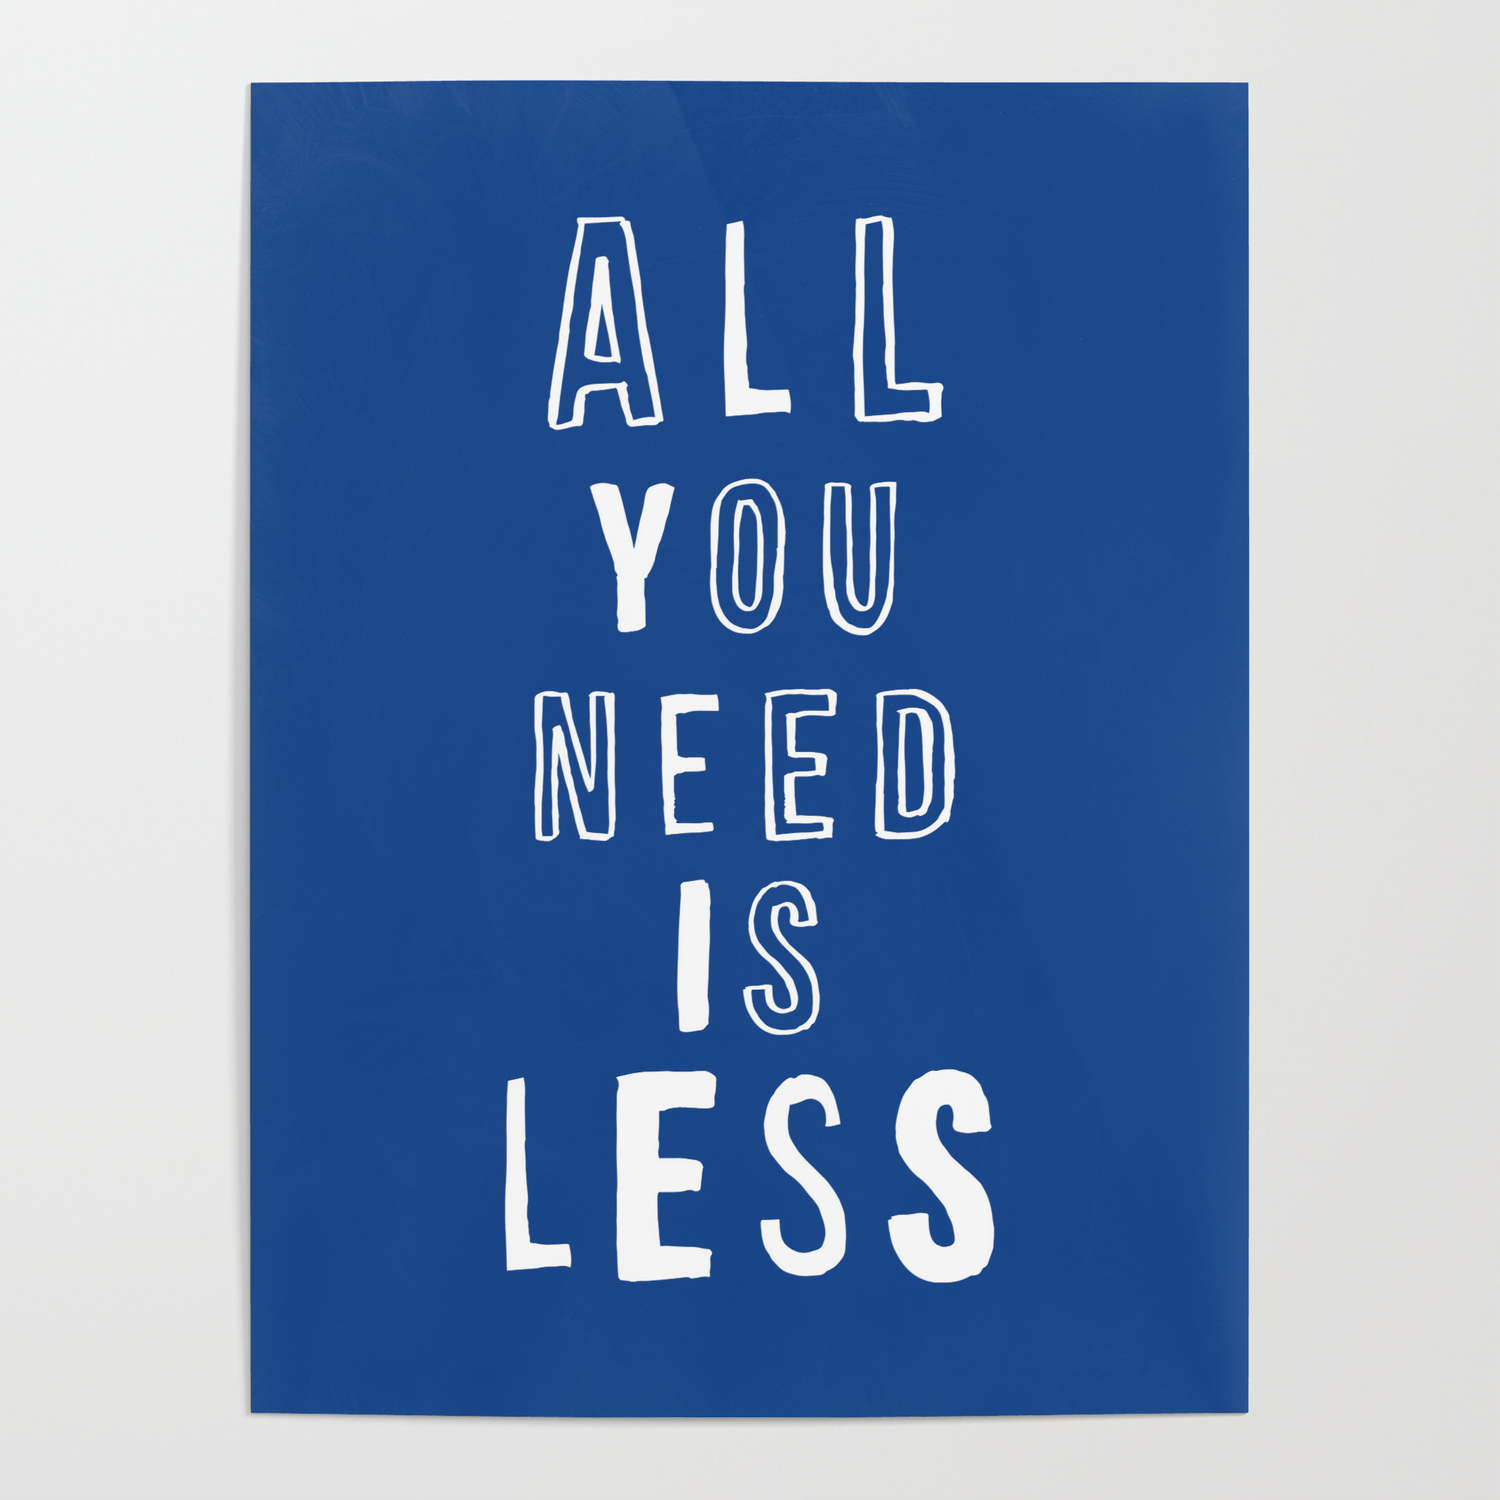 All You Need Is Less Typography Wall Art Home Decor In Blue And White Poster By Themotivatedtype